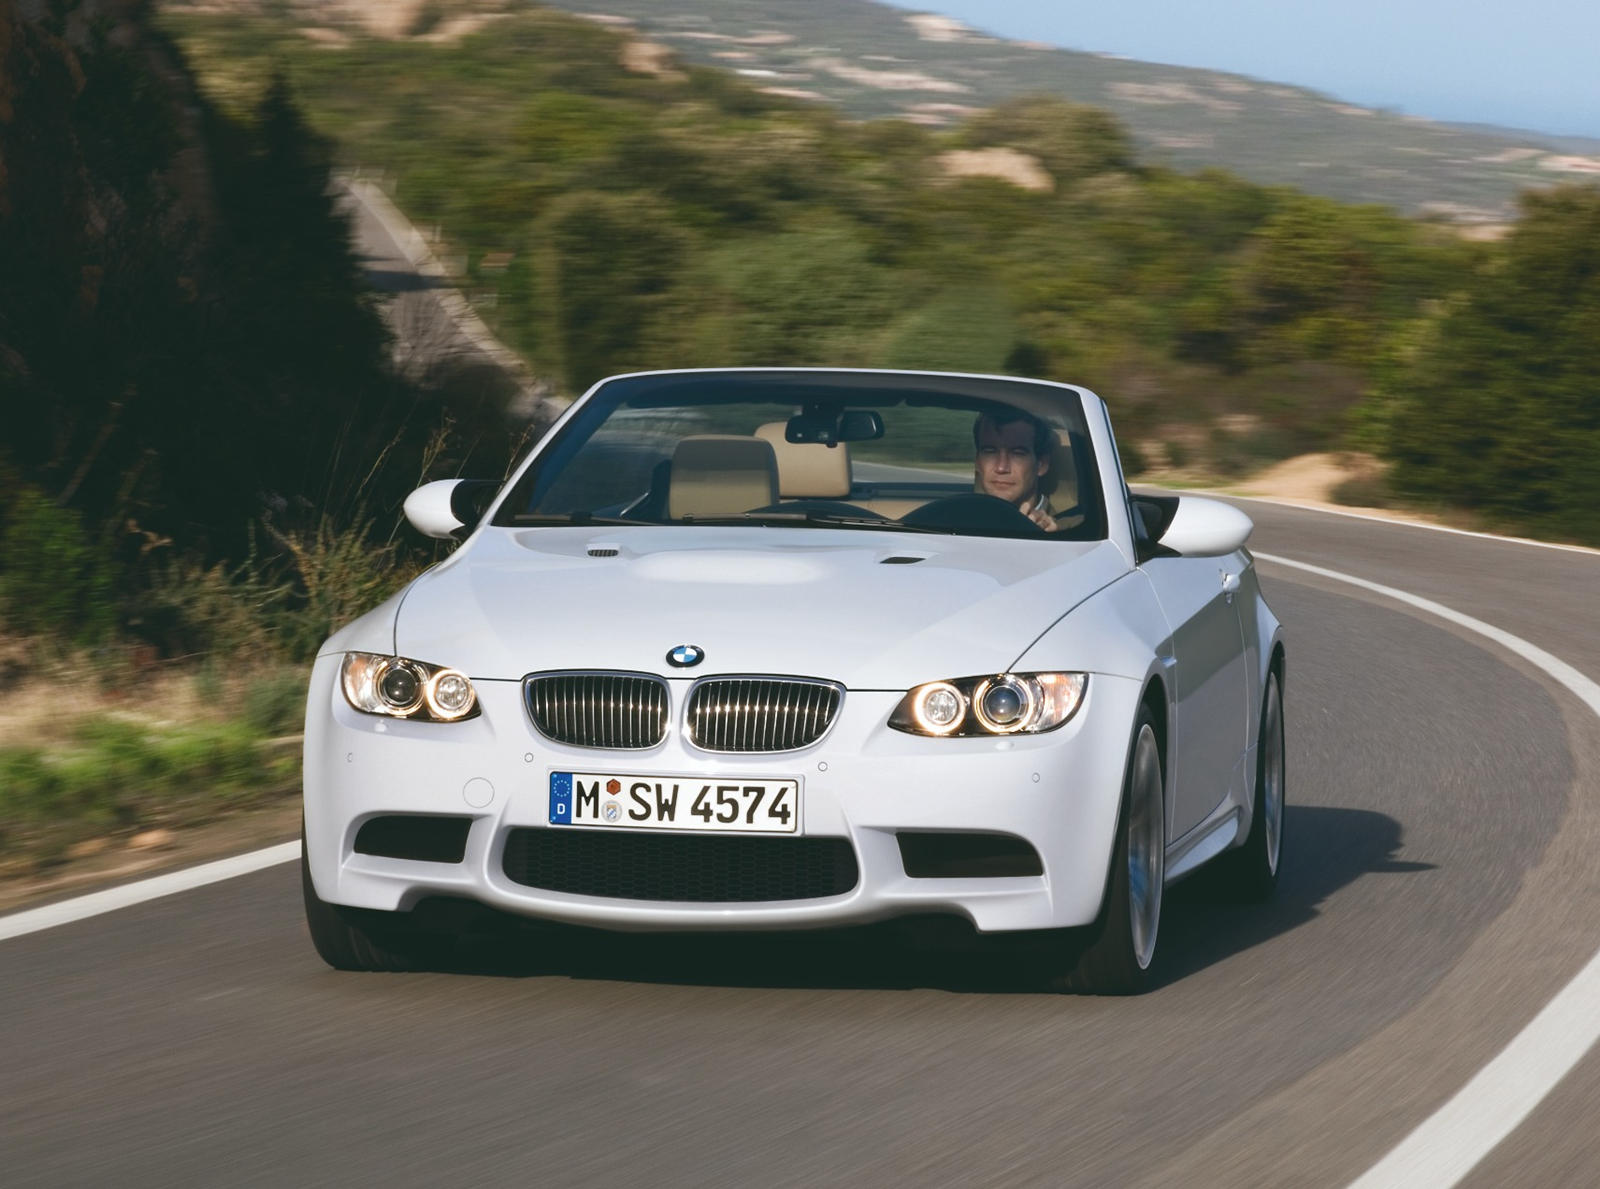 2013 Bmw M3 Convertible Review Trims Specs Price New Interior Features Exterior Design And Specifications Carbuzz